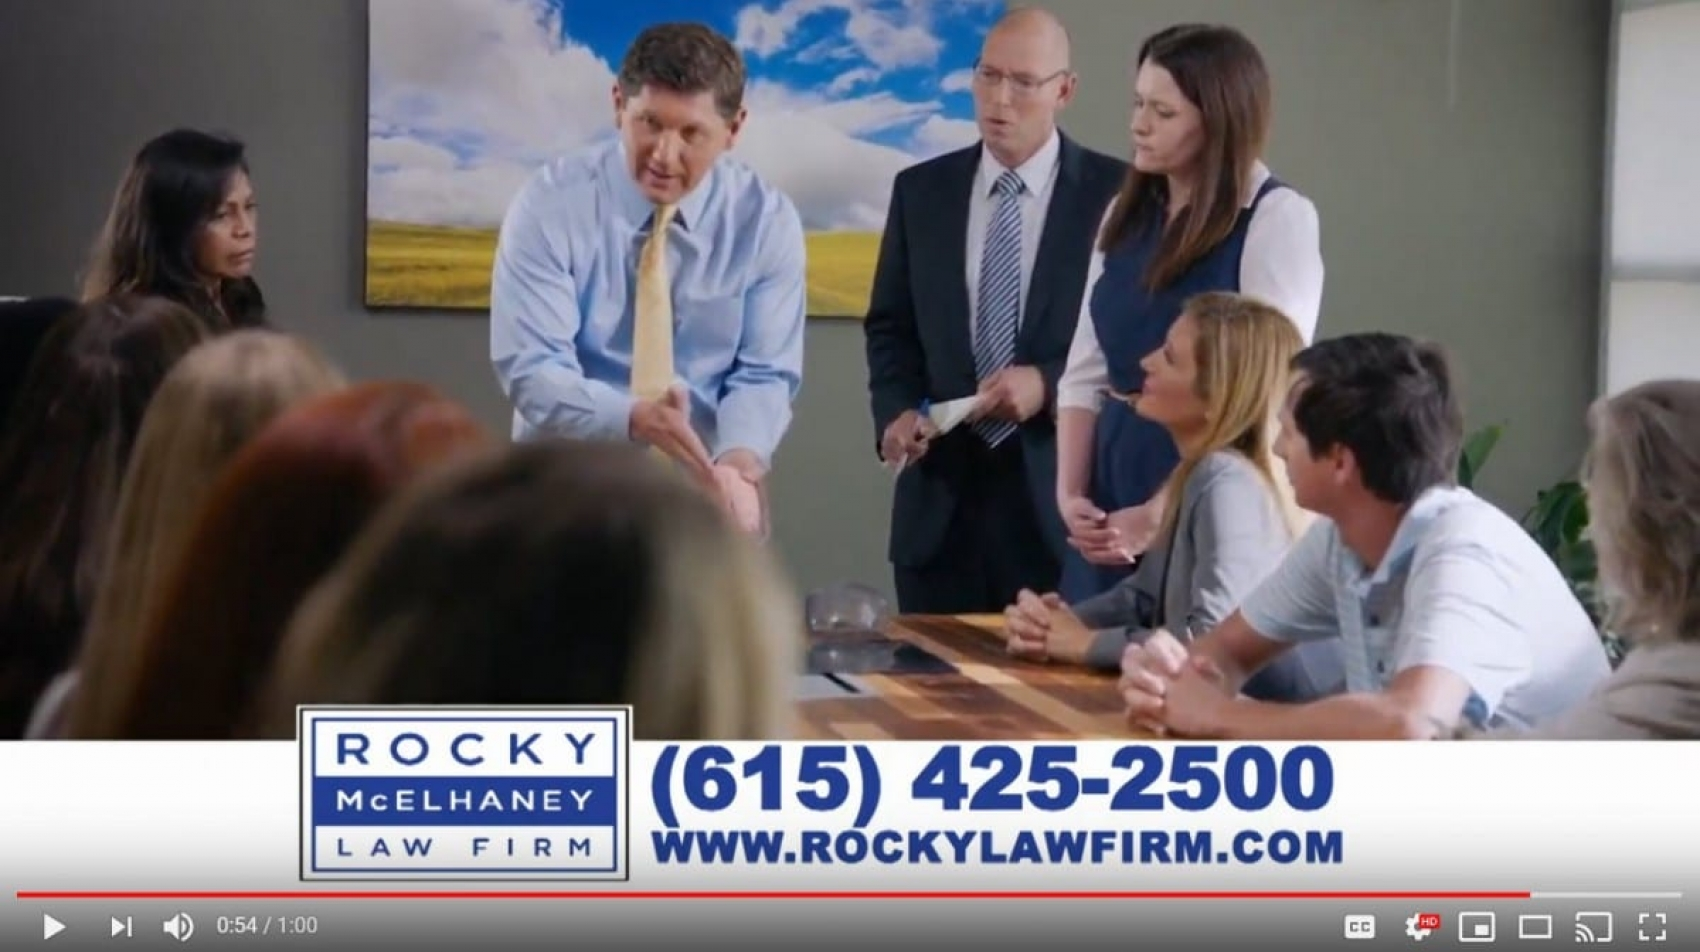 Truck Testimonial - Rocky McElhaney Law Firm Commercial